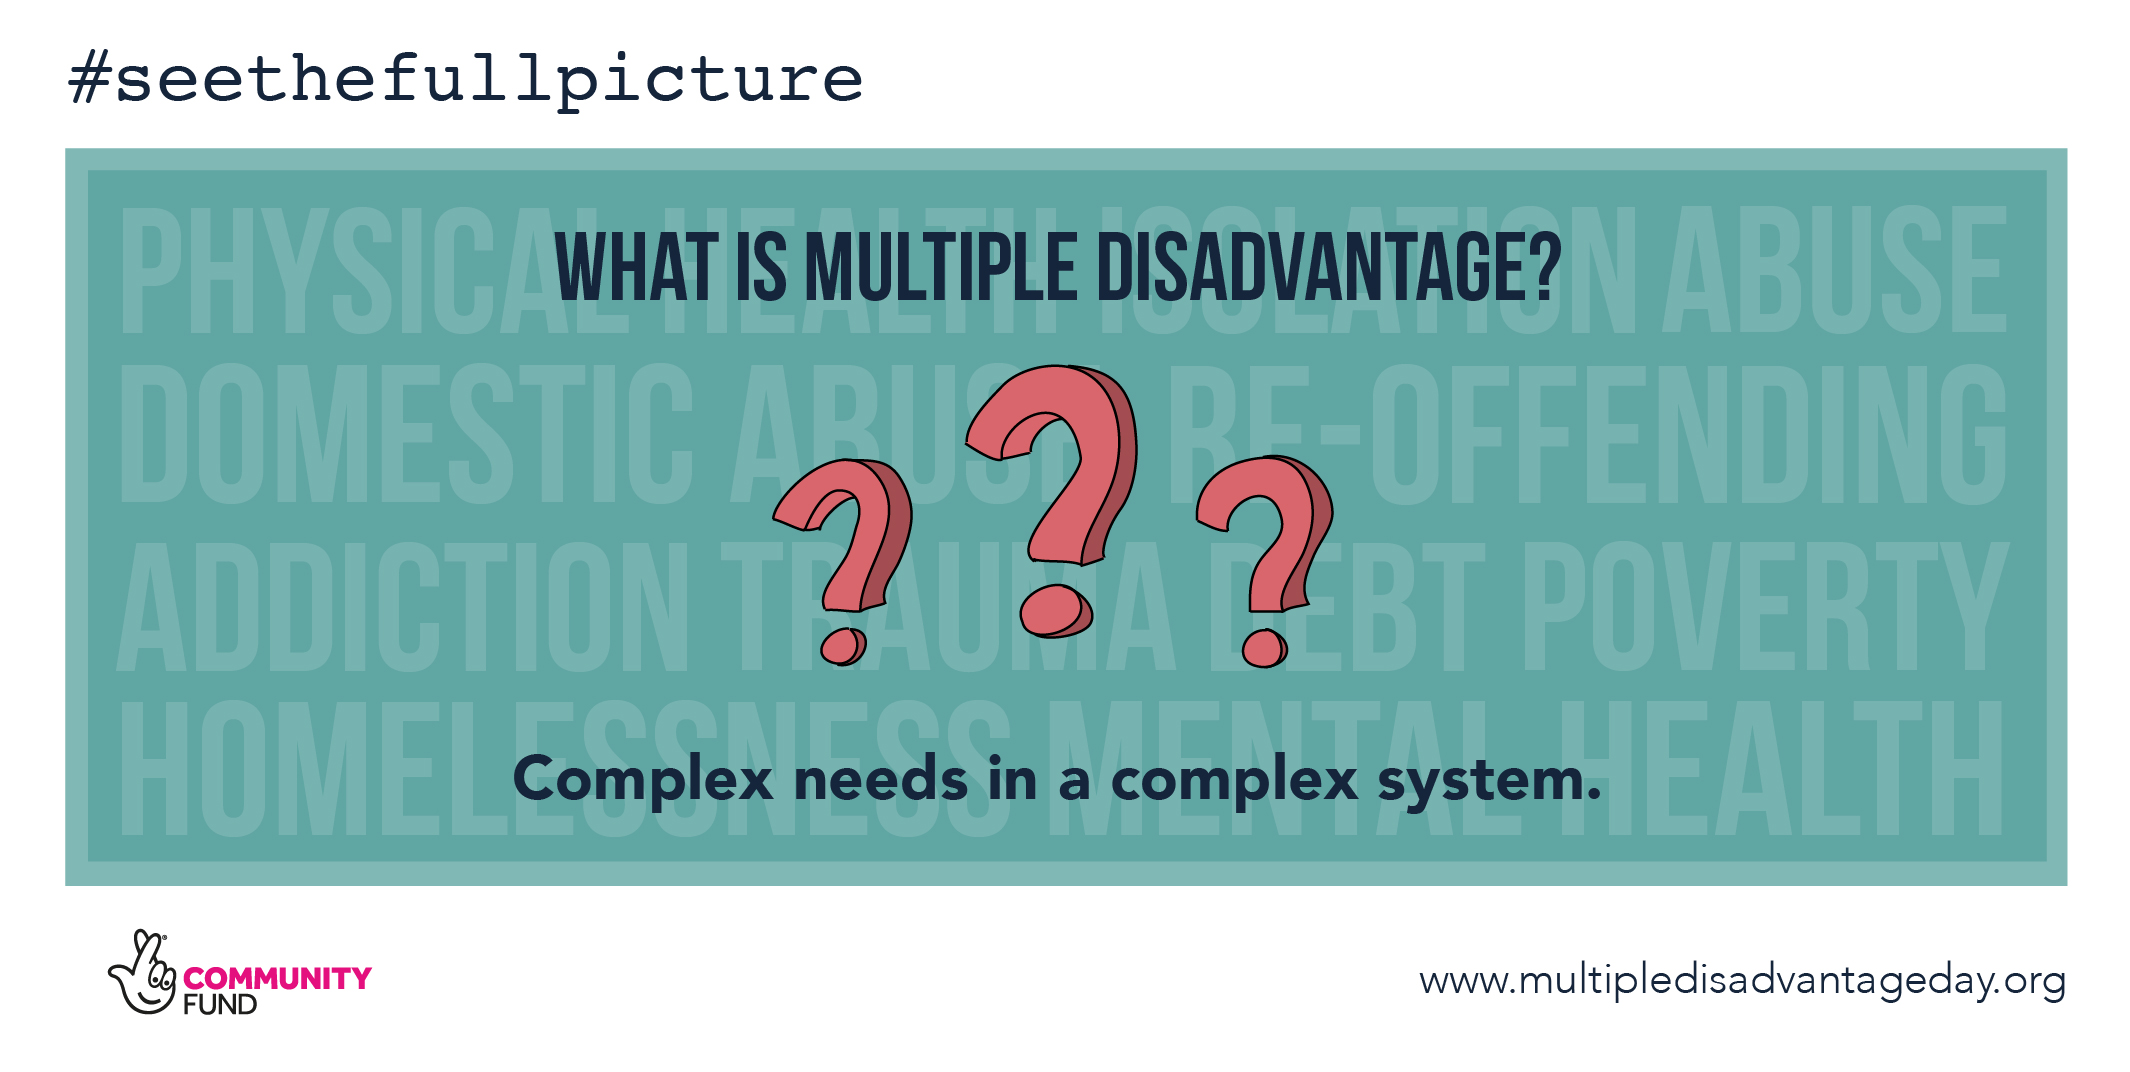 Multiple Disadvantage Day - #seethefullpicture - Campaign Graphics - What is Multiple Disadvantage? Complex needs an a complex system.